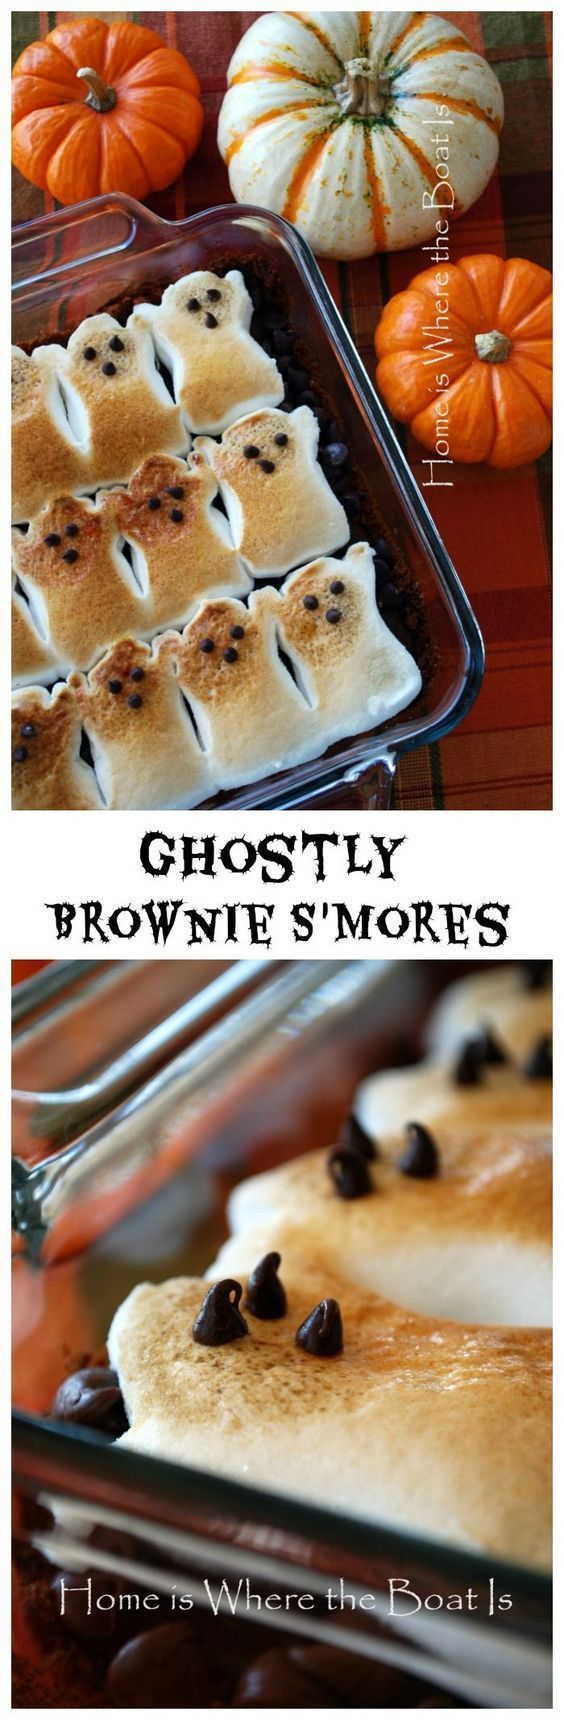 Best 10+ Halloween party recipes ideas on Pinterest | Kids ...